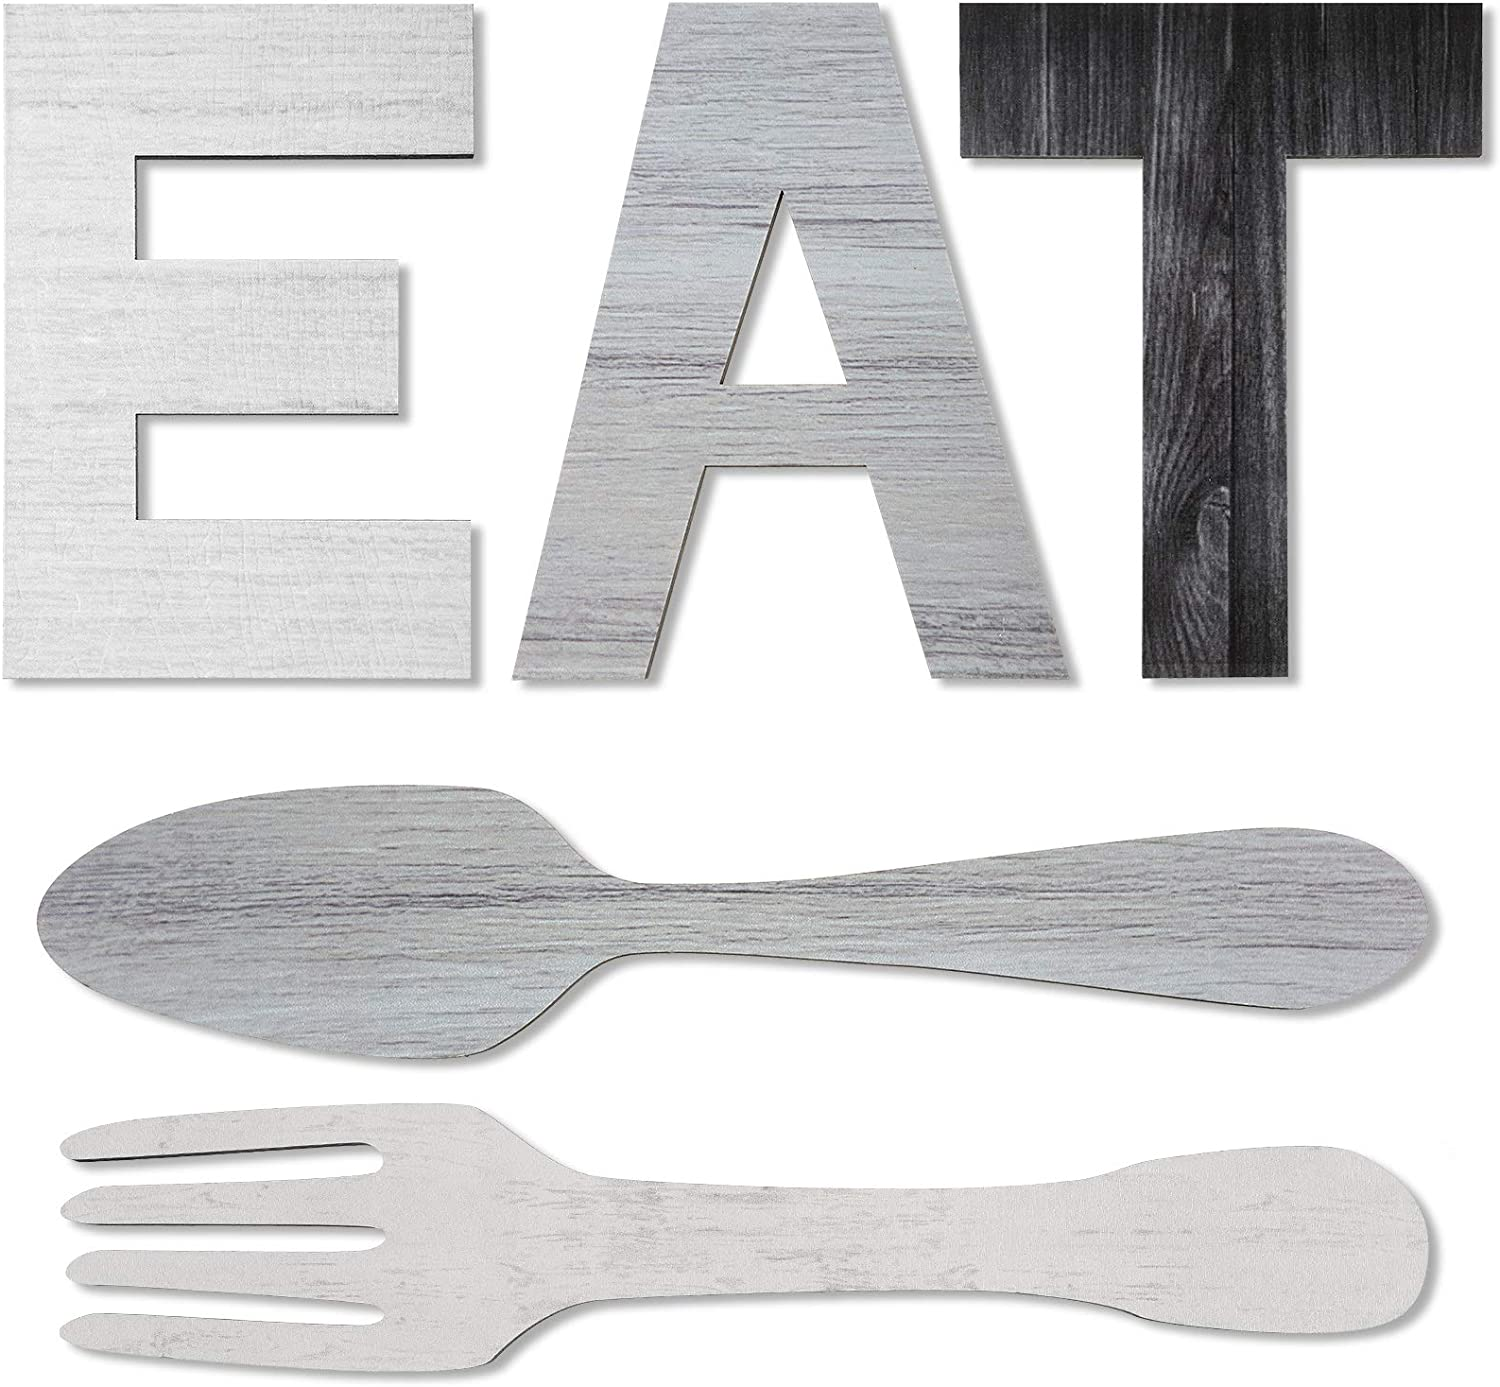 Set of EAT Sign, Fork and Spoon Wall Decor, Rustic Wood Eat Decoration, Cute Eat Letters for Kitchen and Home, Decorative Hanging Wooden Letters, Country Wall Art, Dining Room (Chic Color)